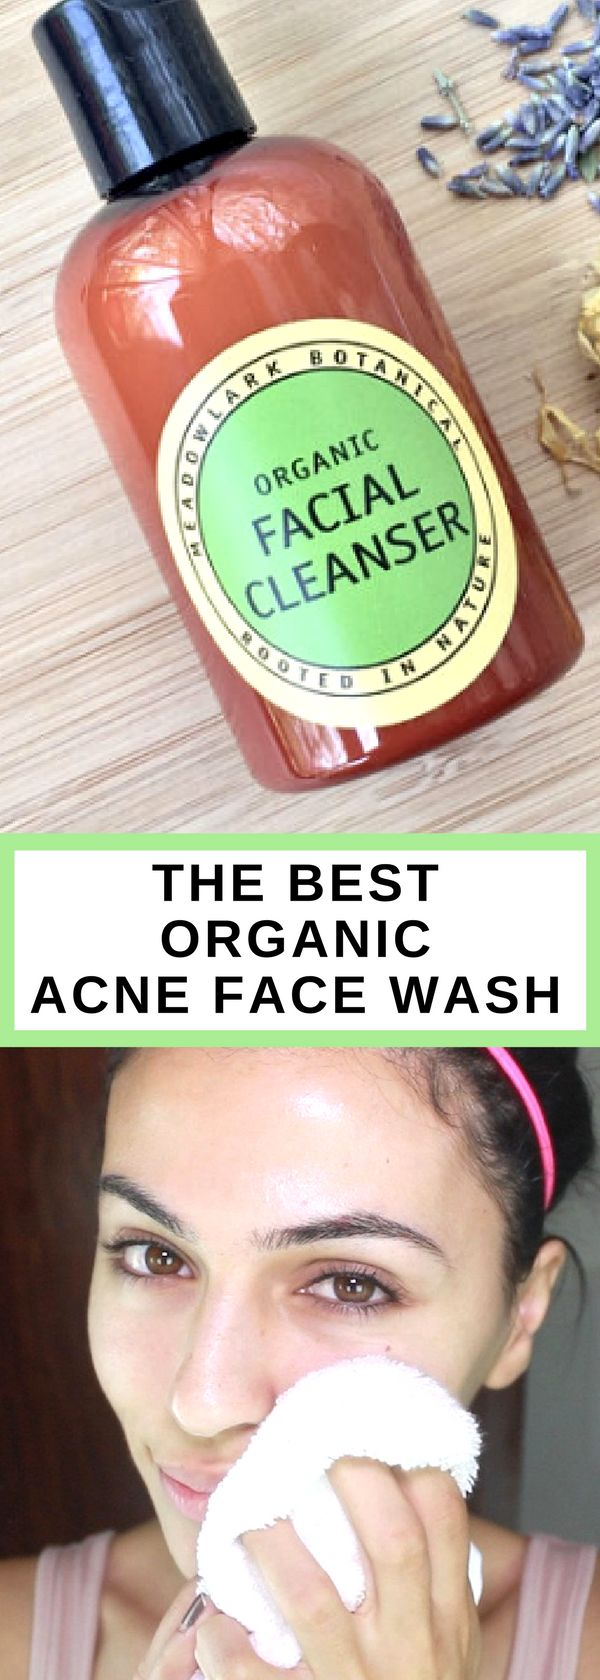 Organic Acne Facial Cleanser | Acne Face Wash | Non Drying Acne Cleanser for Oily Skin | Natural Acne Soap | Deep Cleansing Facial Wash - #afflink #acnecleanser